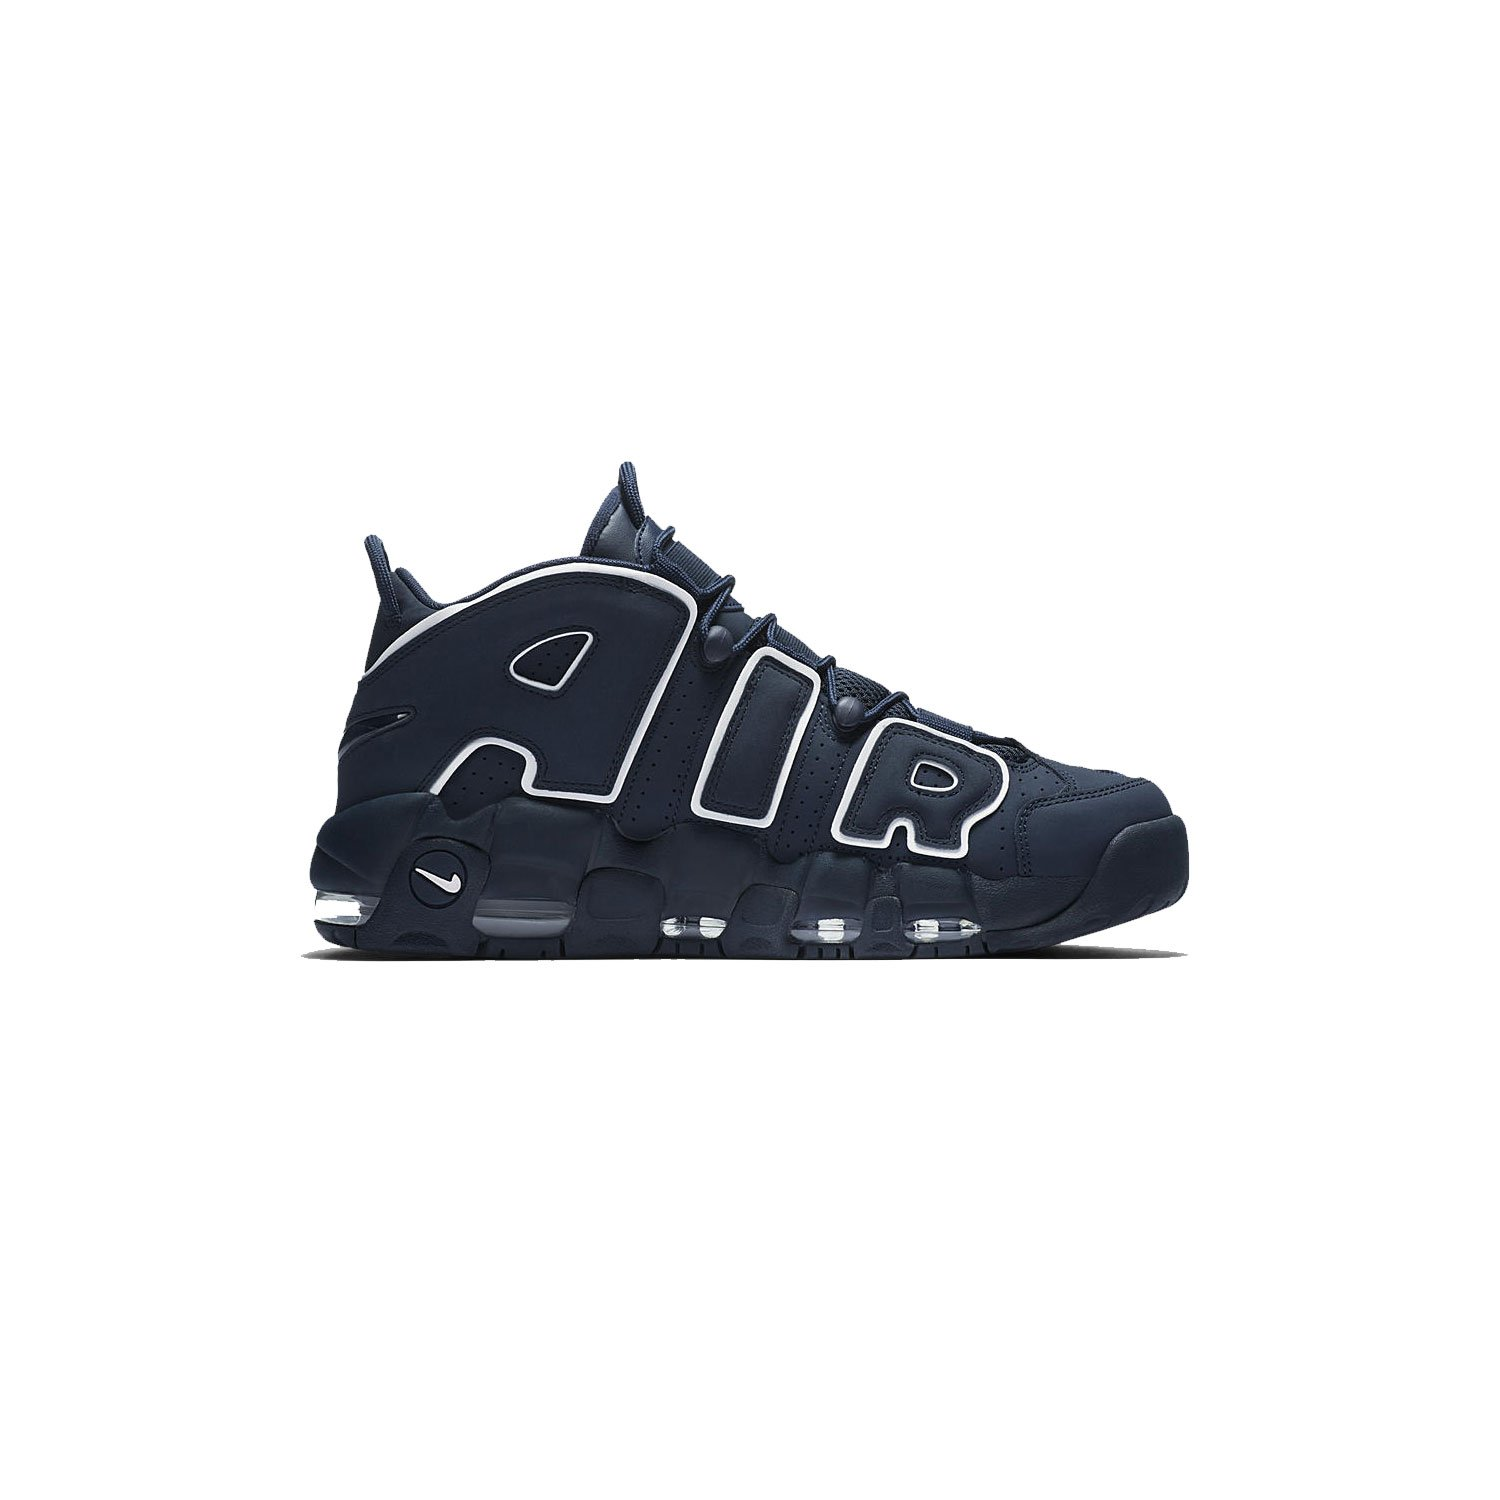 Nike Air More Uptempo 96  Obsidian  NBA Retro Scottie Pippen, Schuhe Herren  43 EU|Blau